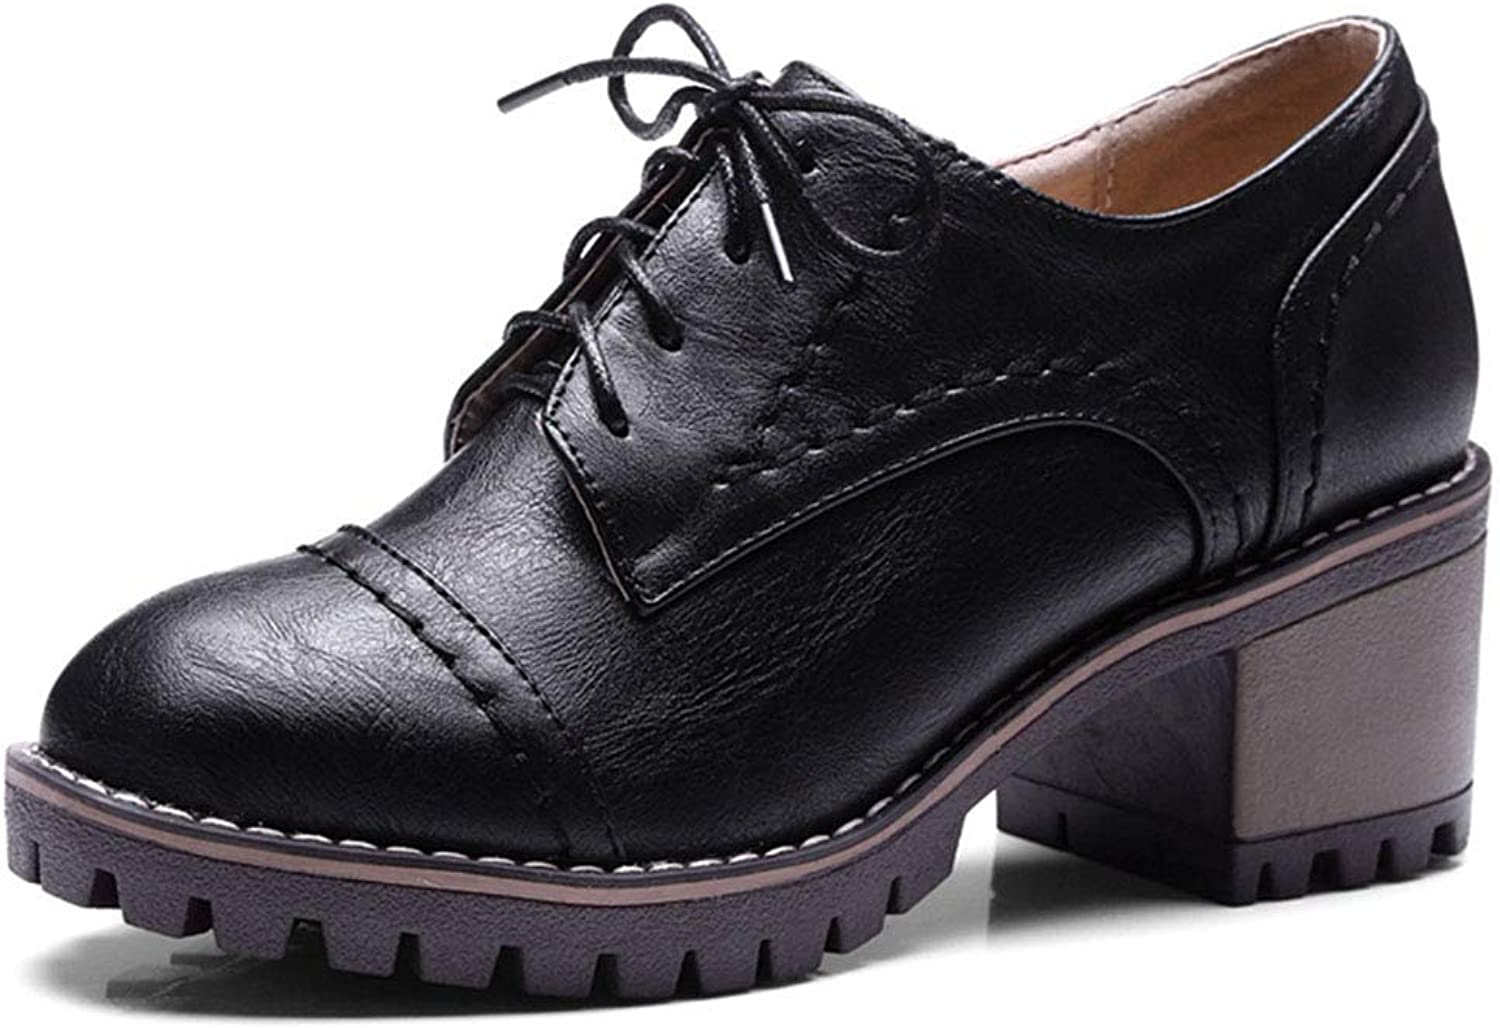 Fashion shoesbox Women's Classic Chunky Heel Ankle Booties Round Toe Lace up Slip-On Handmade Platform Oxford shoes